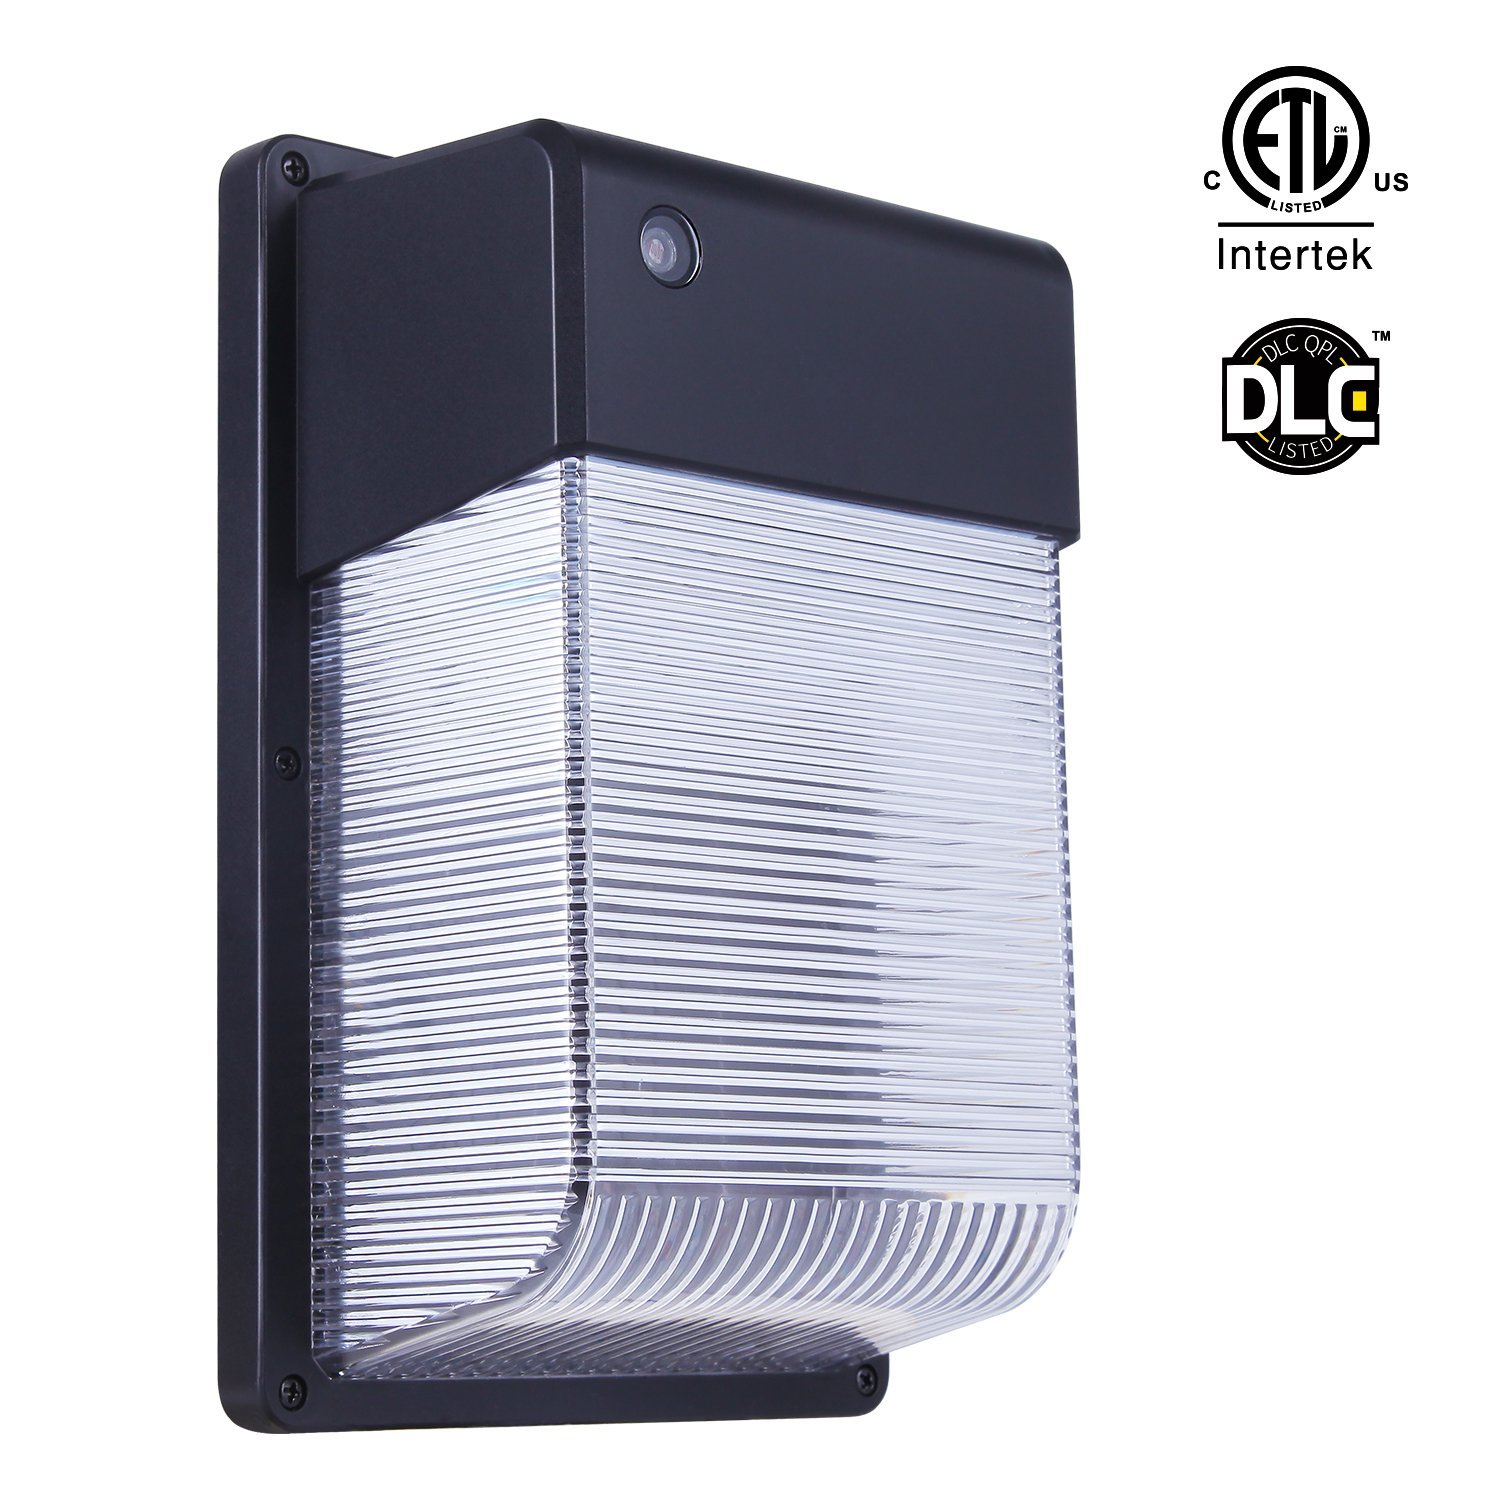 JJC LED Wall Mount Light, Wall Pack with Sensor 16W 3000K Warm White 1500lm,(Dusk-to-Dawn Photocell,Waterproof IP65), 150W Equivalent.100-277Vac,ETL Certified, Wall Light Outdoor for Garage,Yard